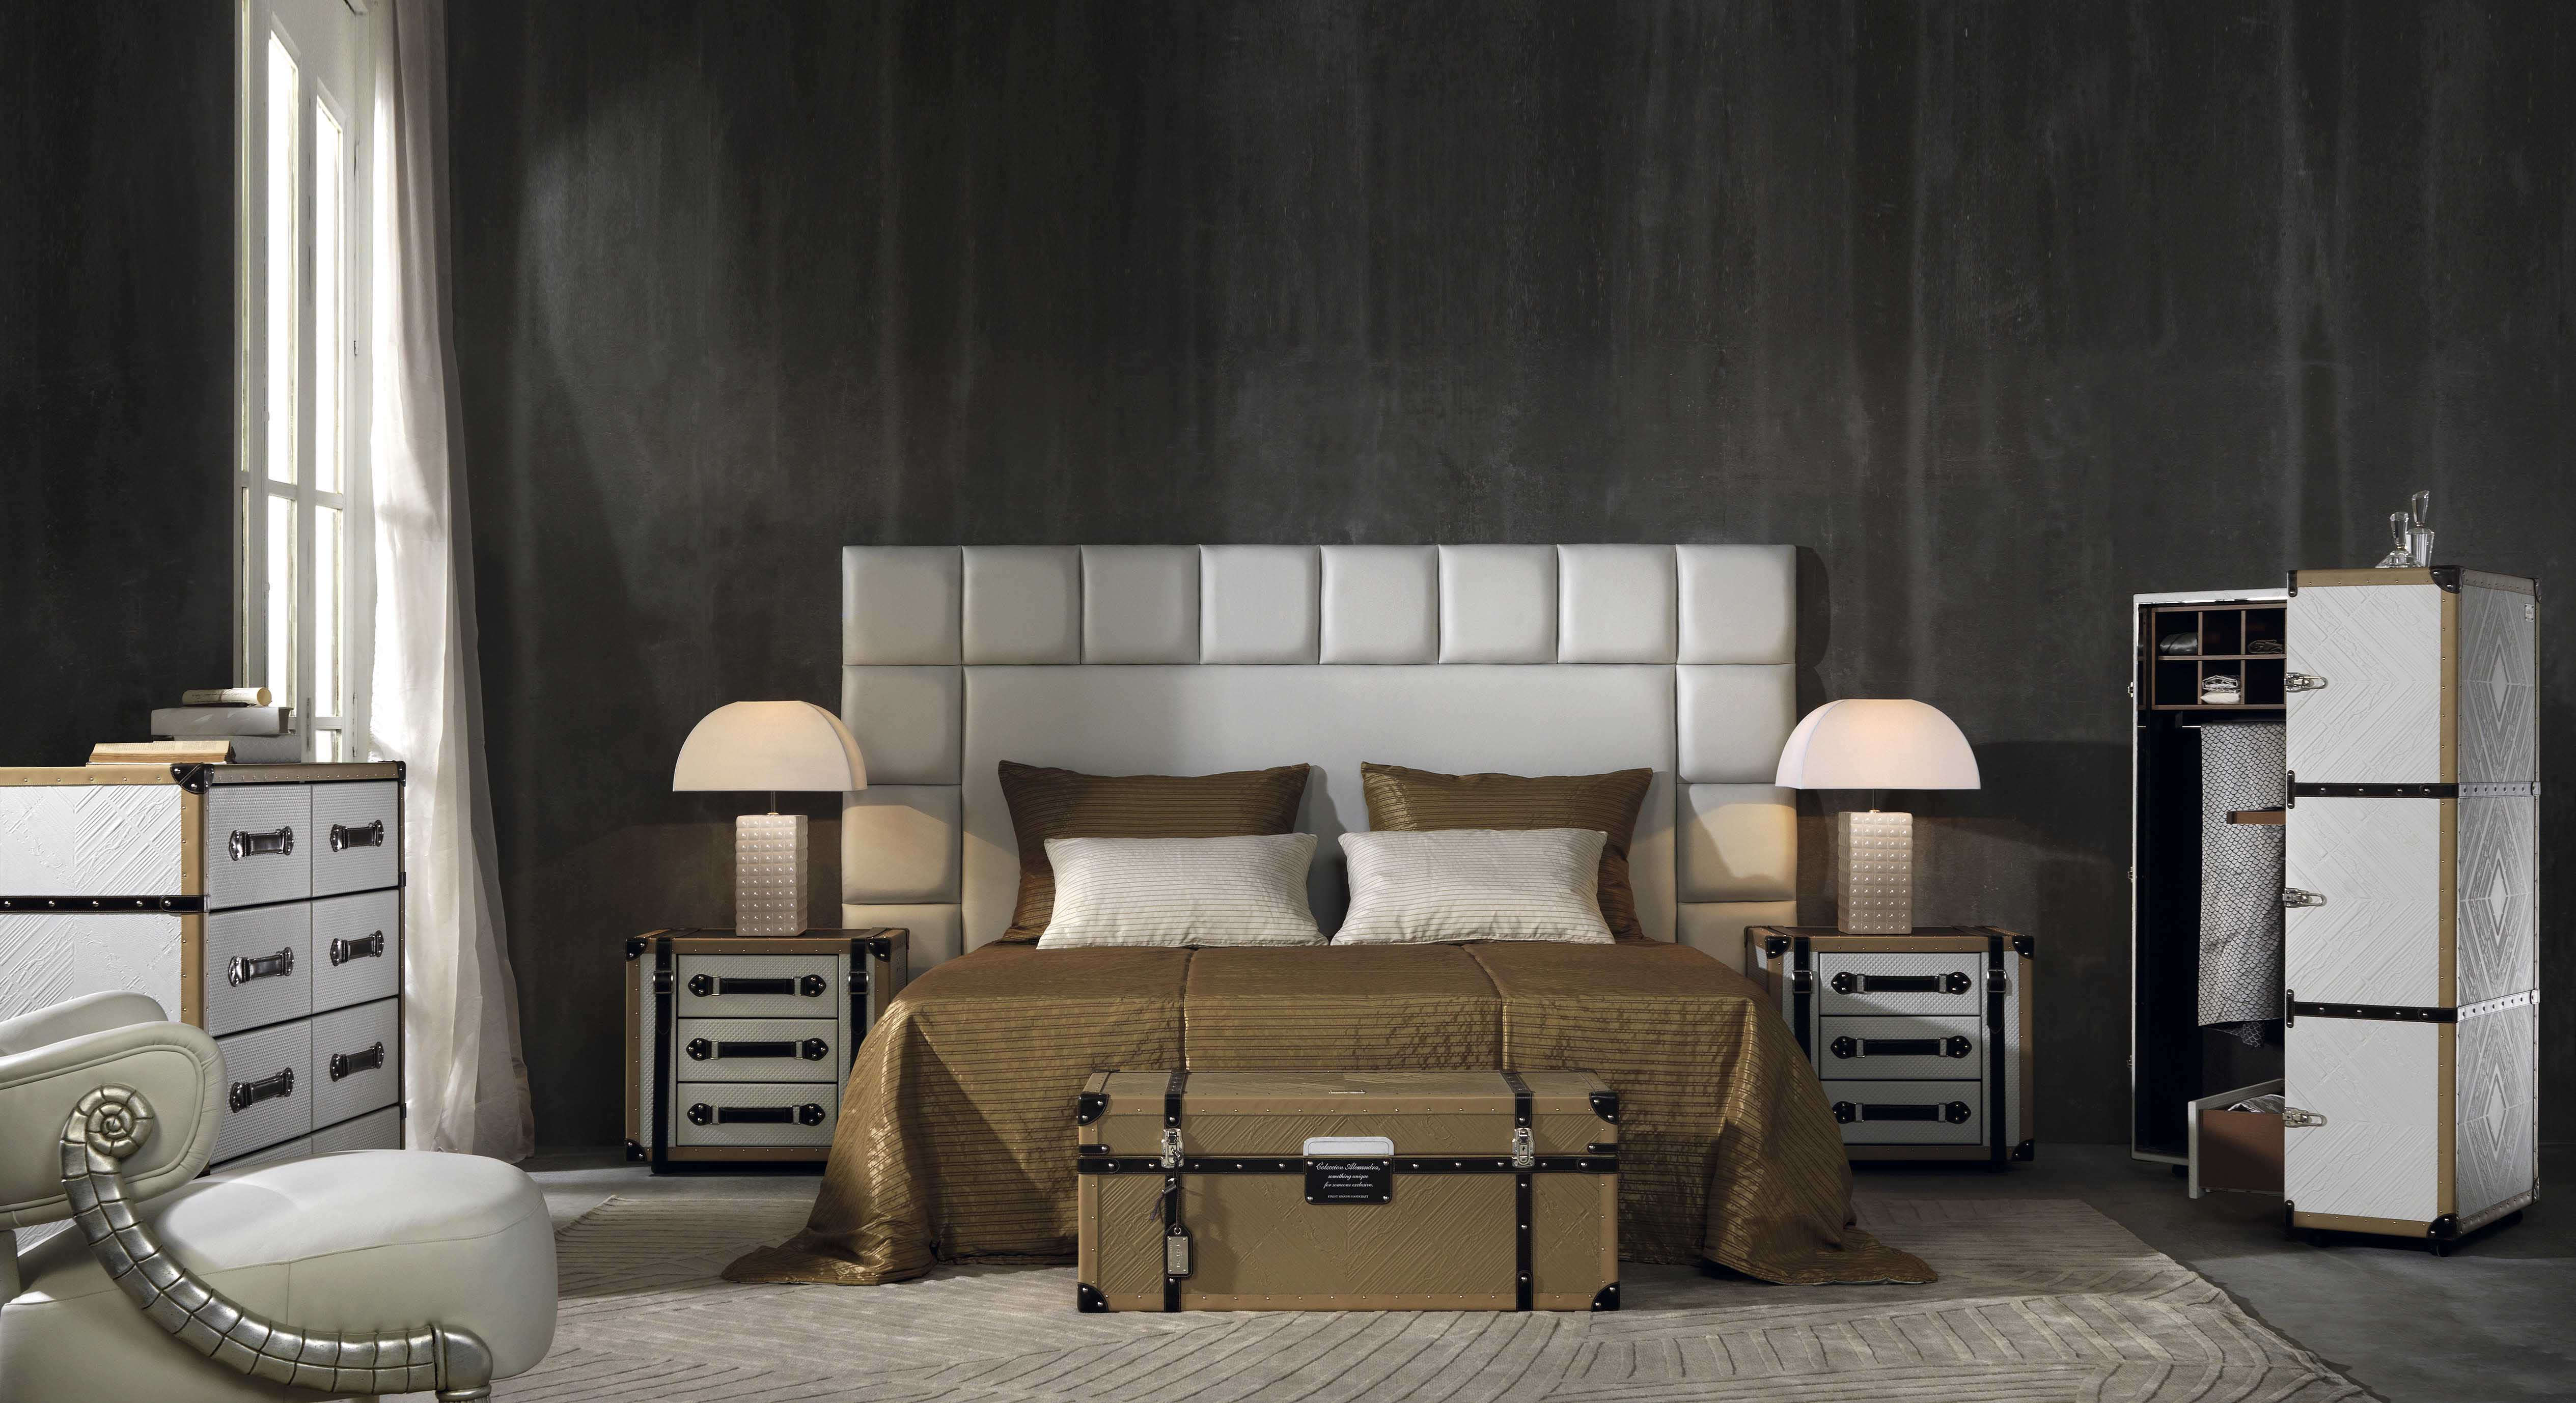 Leather Bedroom Furniture Uk photos Stylish - ddns.pexcel.info